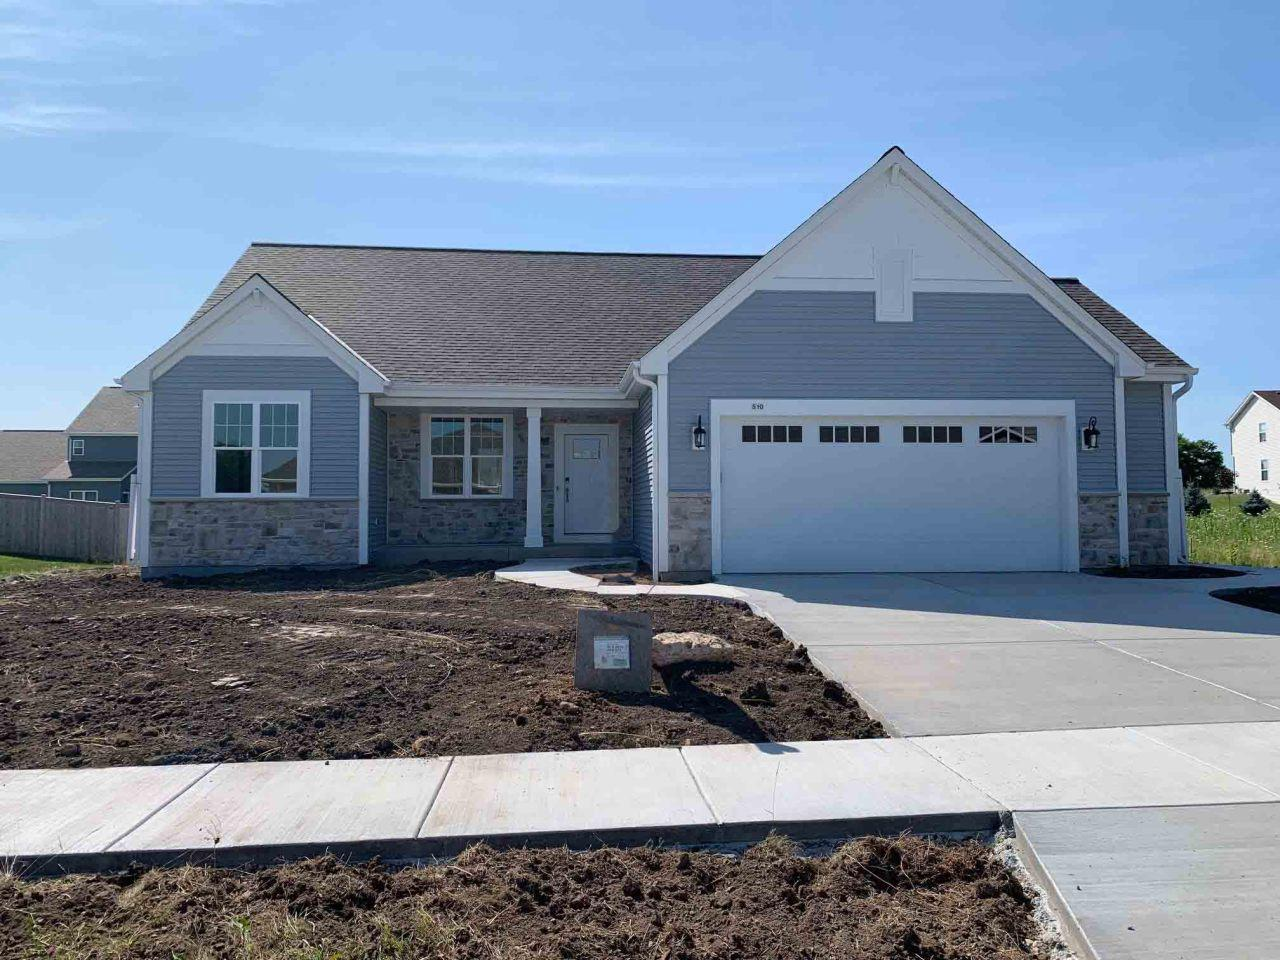 NEW CONSTRUCTION by Stepping Stone Homes.  $2500 buyer closing cost credit OR credit towards a patio/deck for an accepted offer by 10/31! This is the Avery Model located in Western Hills subdivision and it offers top grade materials and construction.  From the 2x6 exterior framing to the quartz and marble counter tops, soft close dovetail cabinetry, upgraded flooring and even an active radon system.  You'll have no problem fitting your truck in the garage with the 8 foot garage doors.  You can even use your phone to make sure the garage door is closed. This smart home has it all. Integrated lights, door locks, smart thermostat, video doorbell and upgraded appliances you can control from your mobile device!  Look inside your refrigerator while you're at the store!  Concrete driveway and law